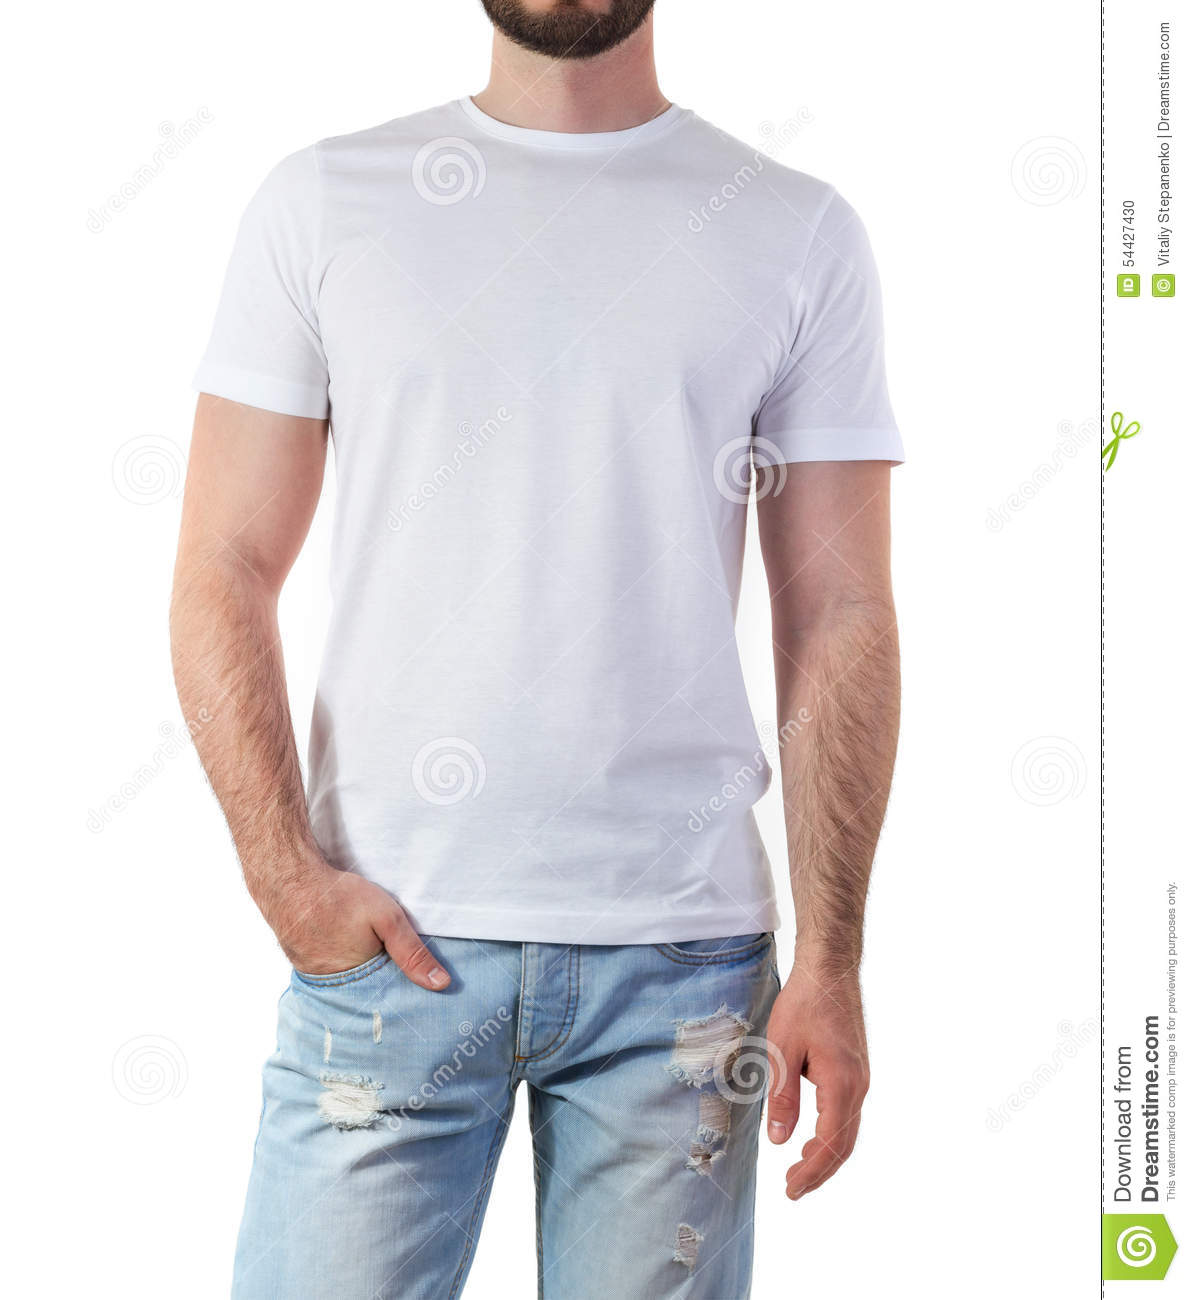 Man in t shirt mock up stock photo image of print blank for White t shirt mockup